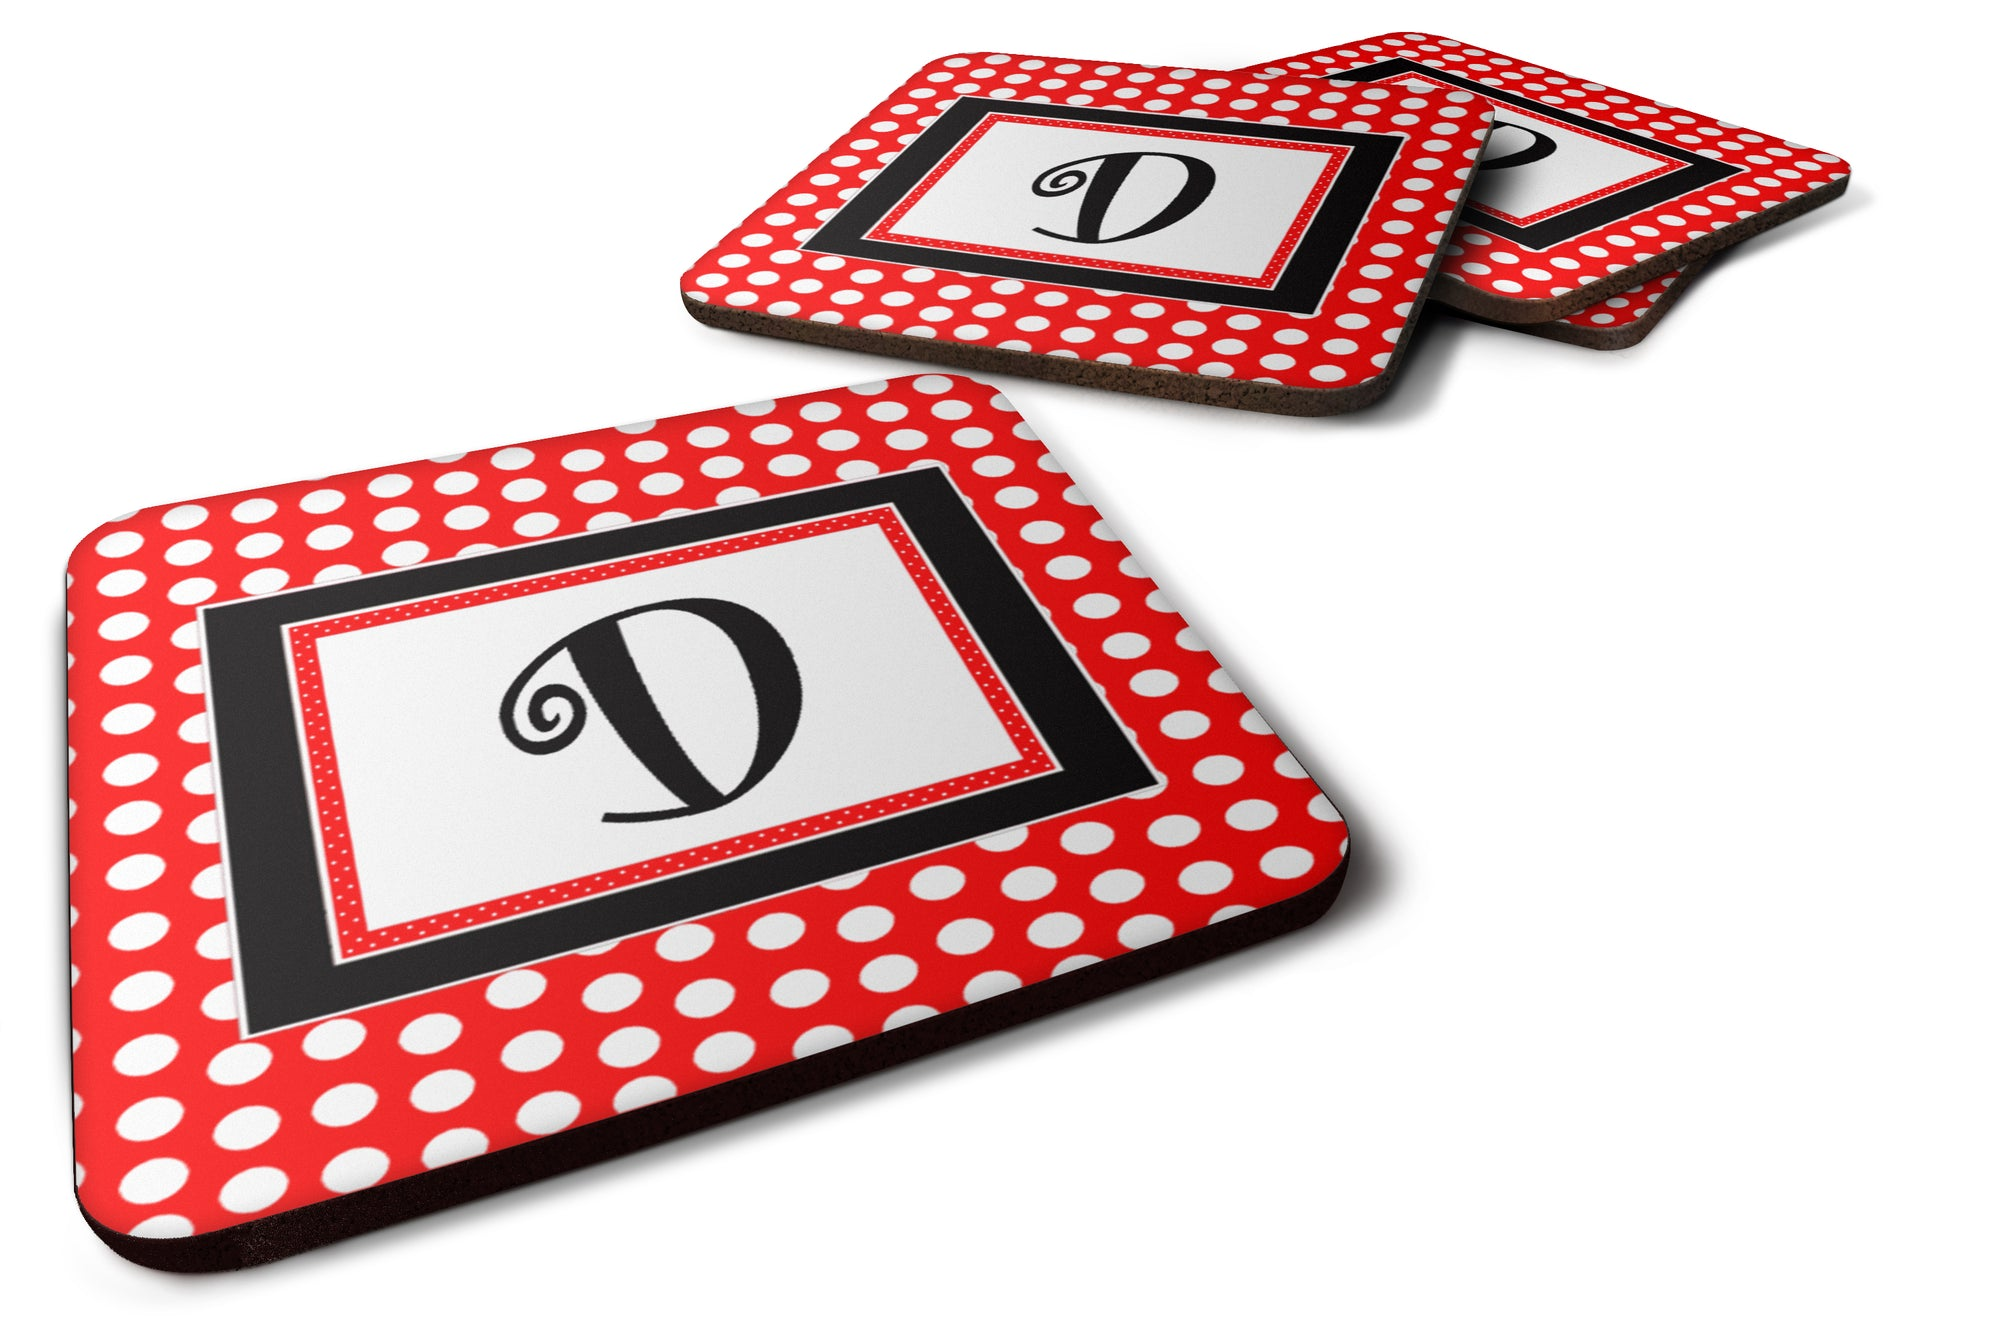 Set of 4 Monogram - Red Black Polka Dots Foam Coasters Initial Letter D by Caroline's Treasures